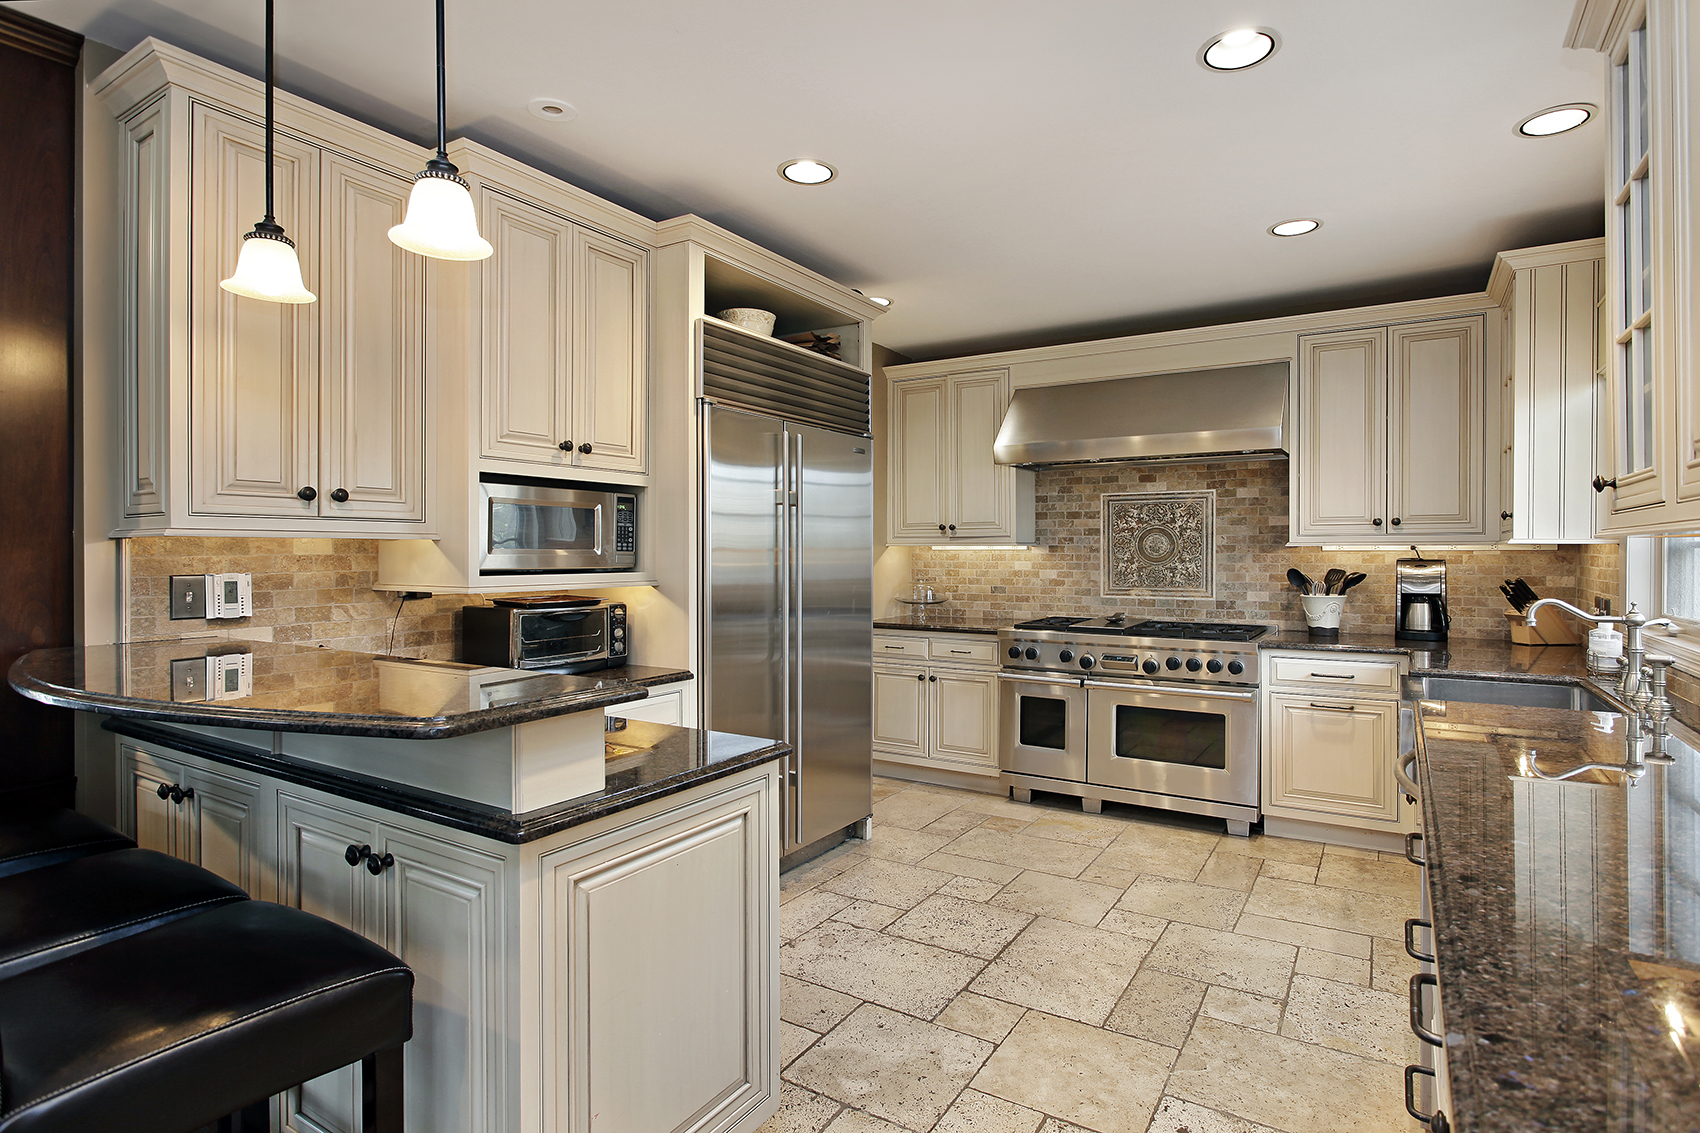 Calgary Custom Kitchen Cabinets Ltd. | Kitchen Cabinets